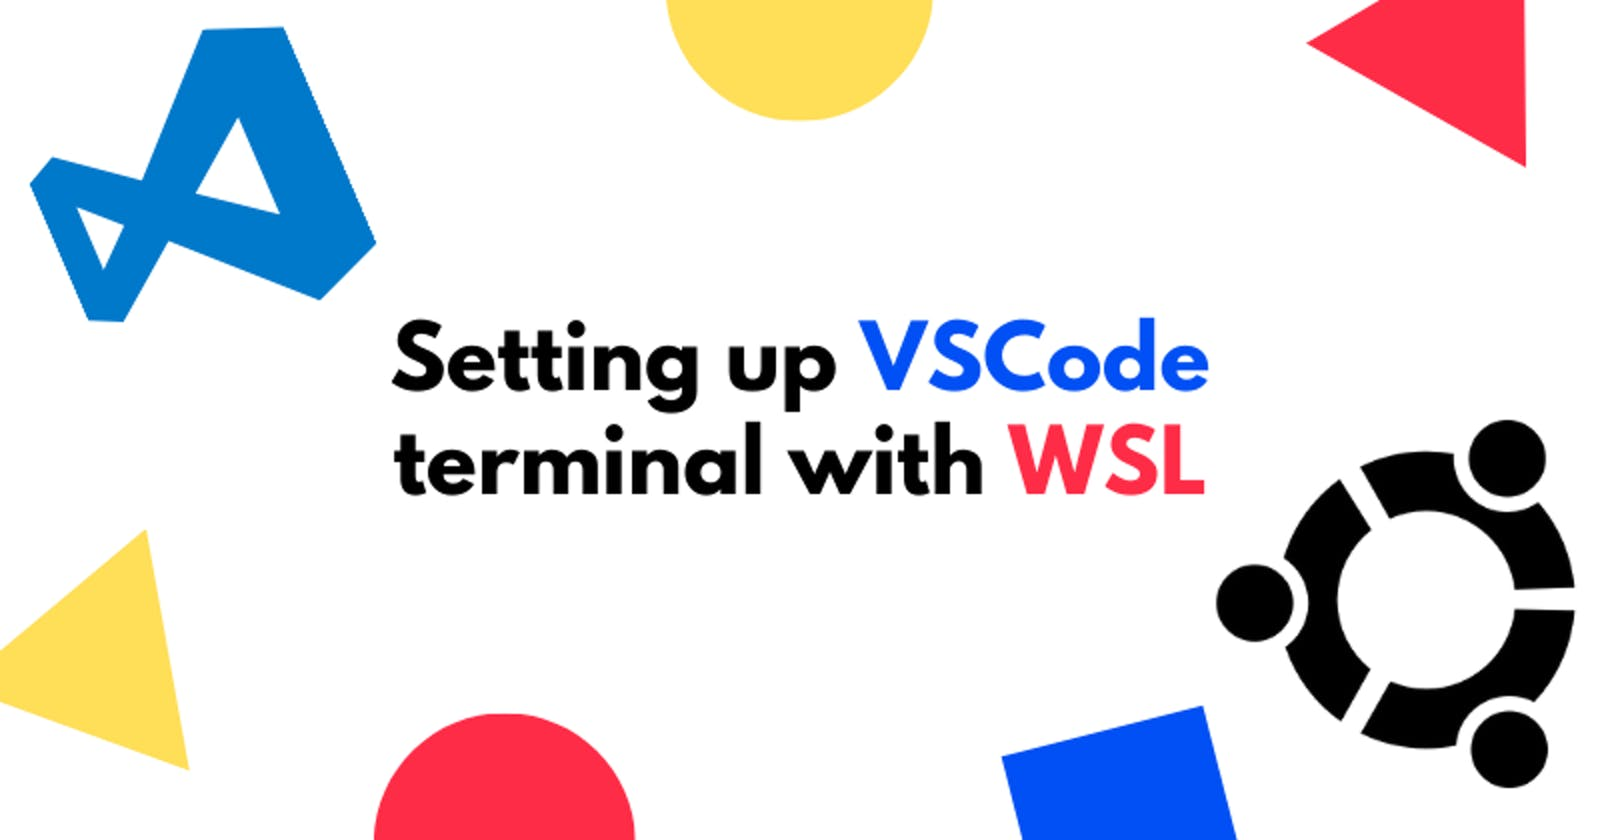 How to Set up VSCode terminal with WSL